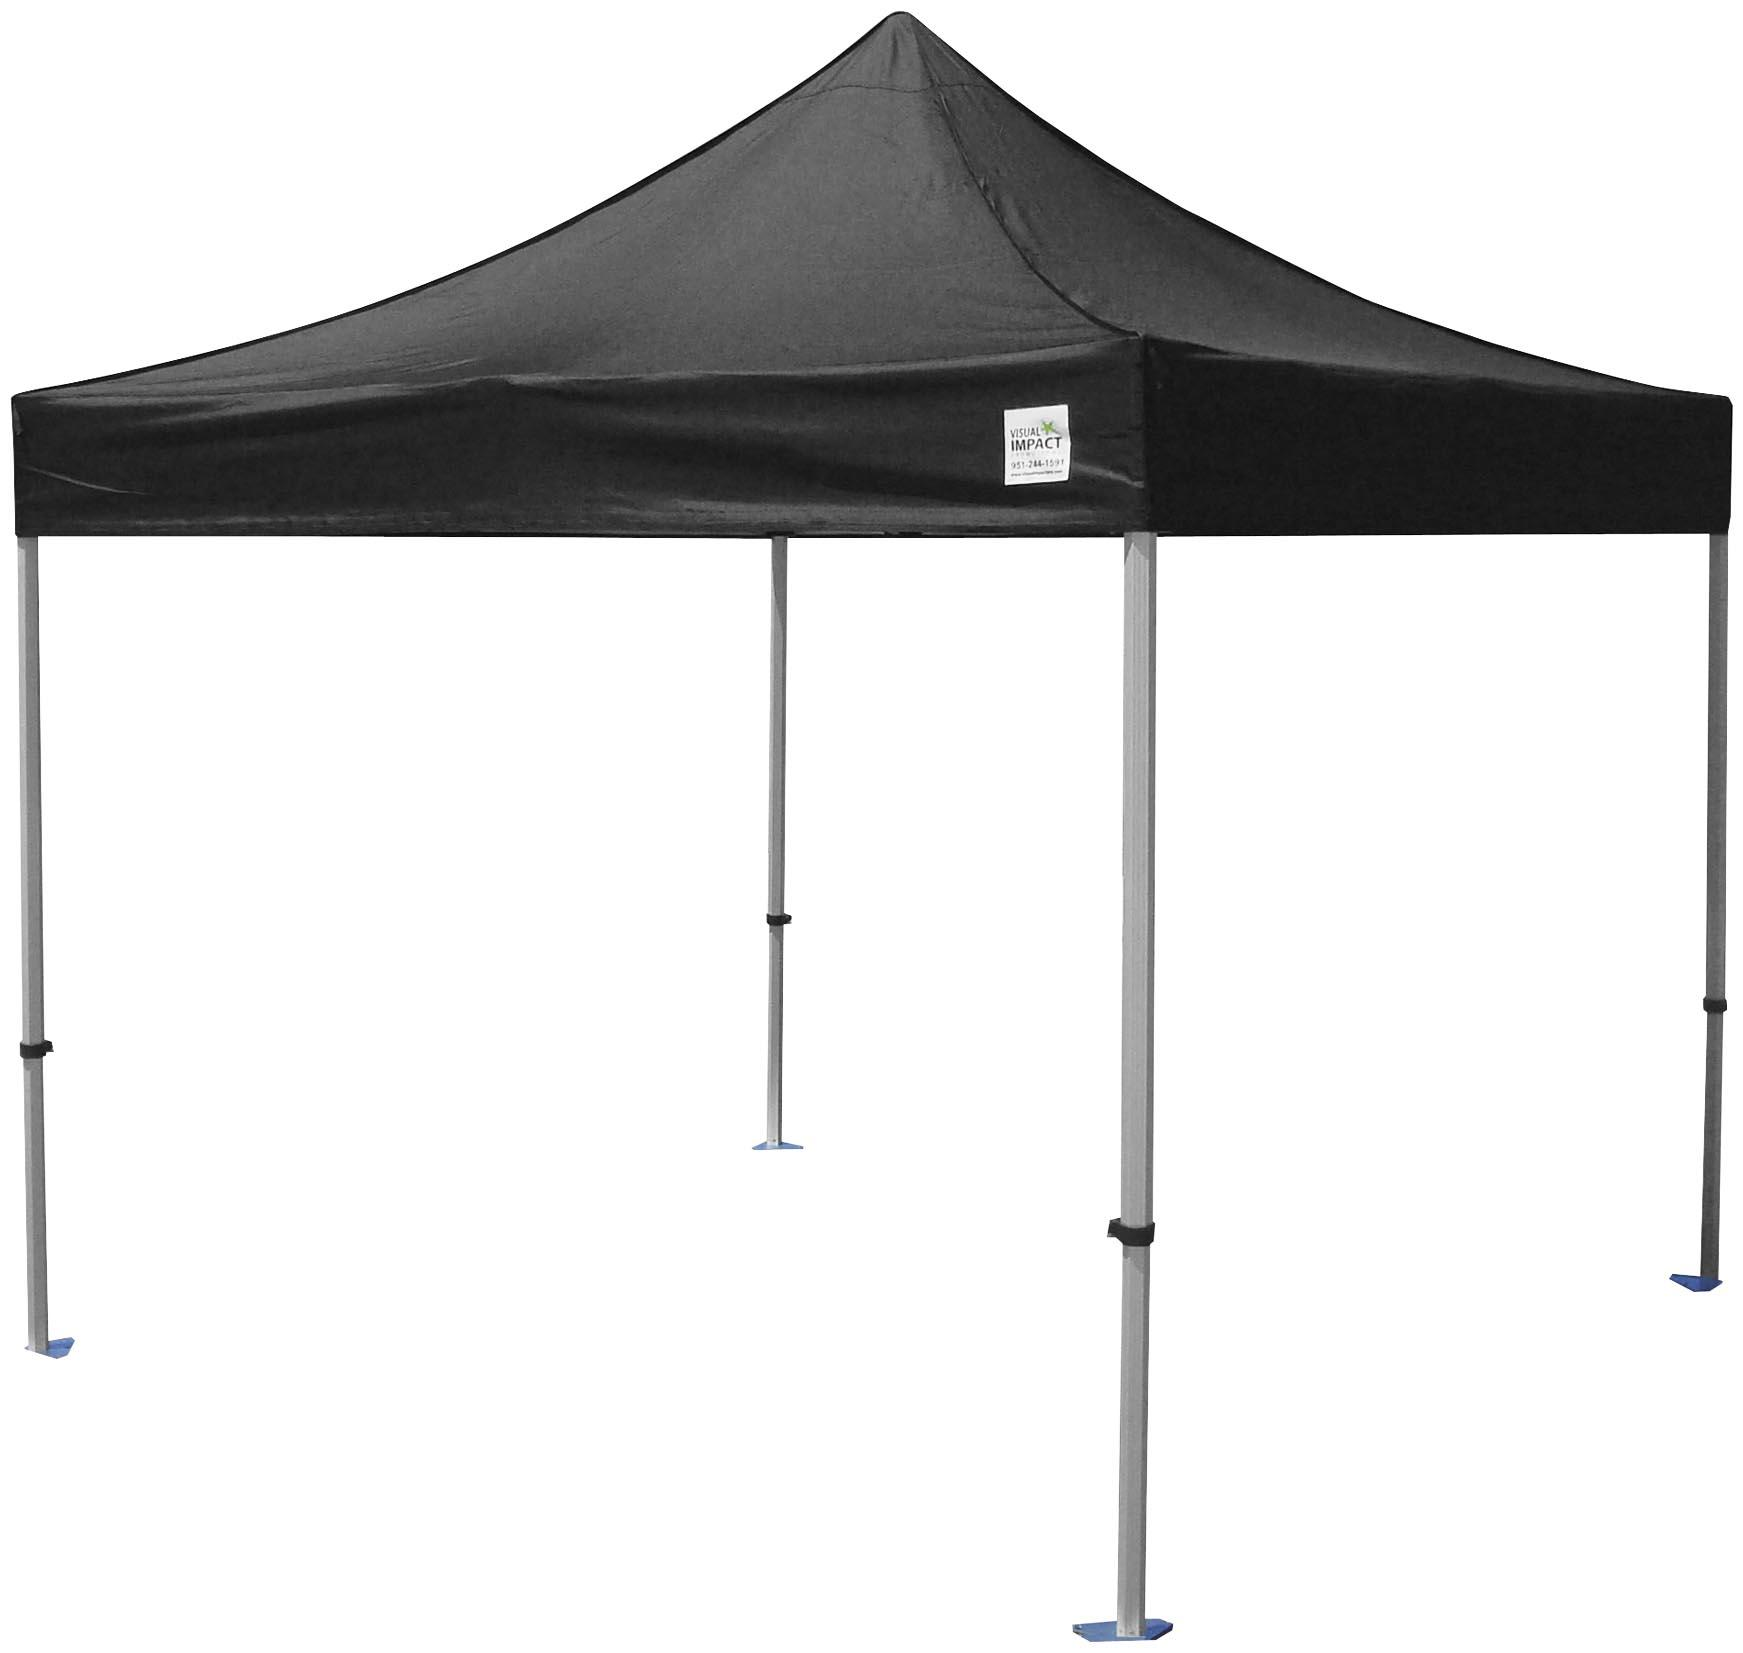 Motorcycle Metal Canopy : Norstar canopy black powder coated steel frame with